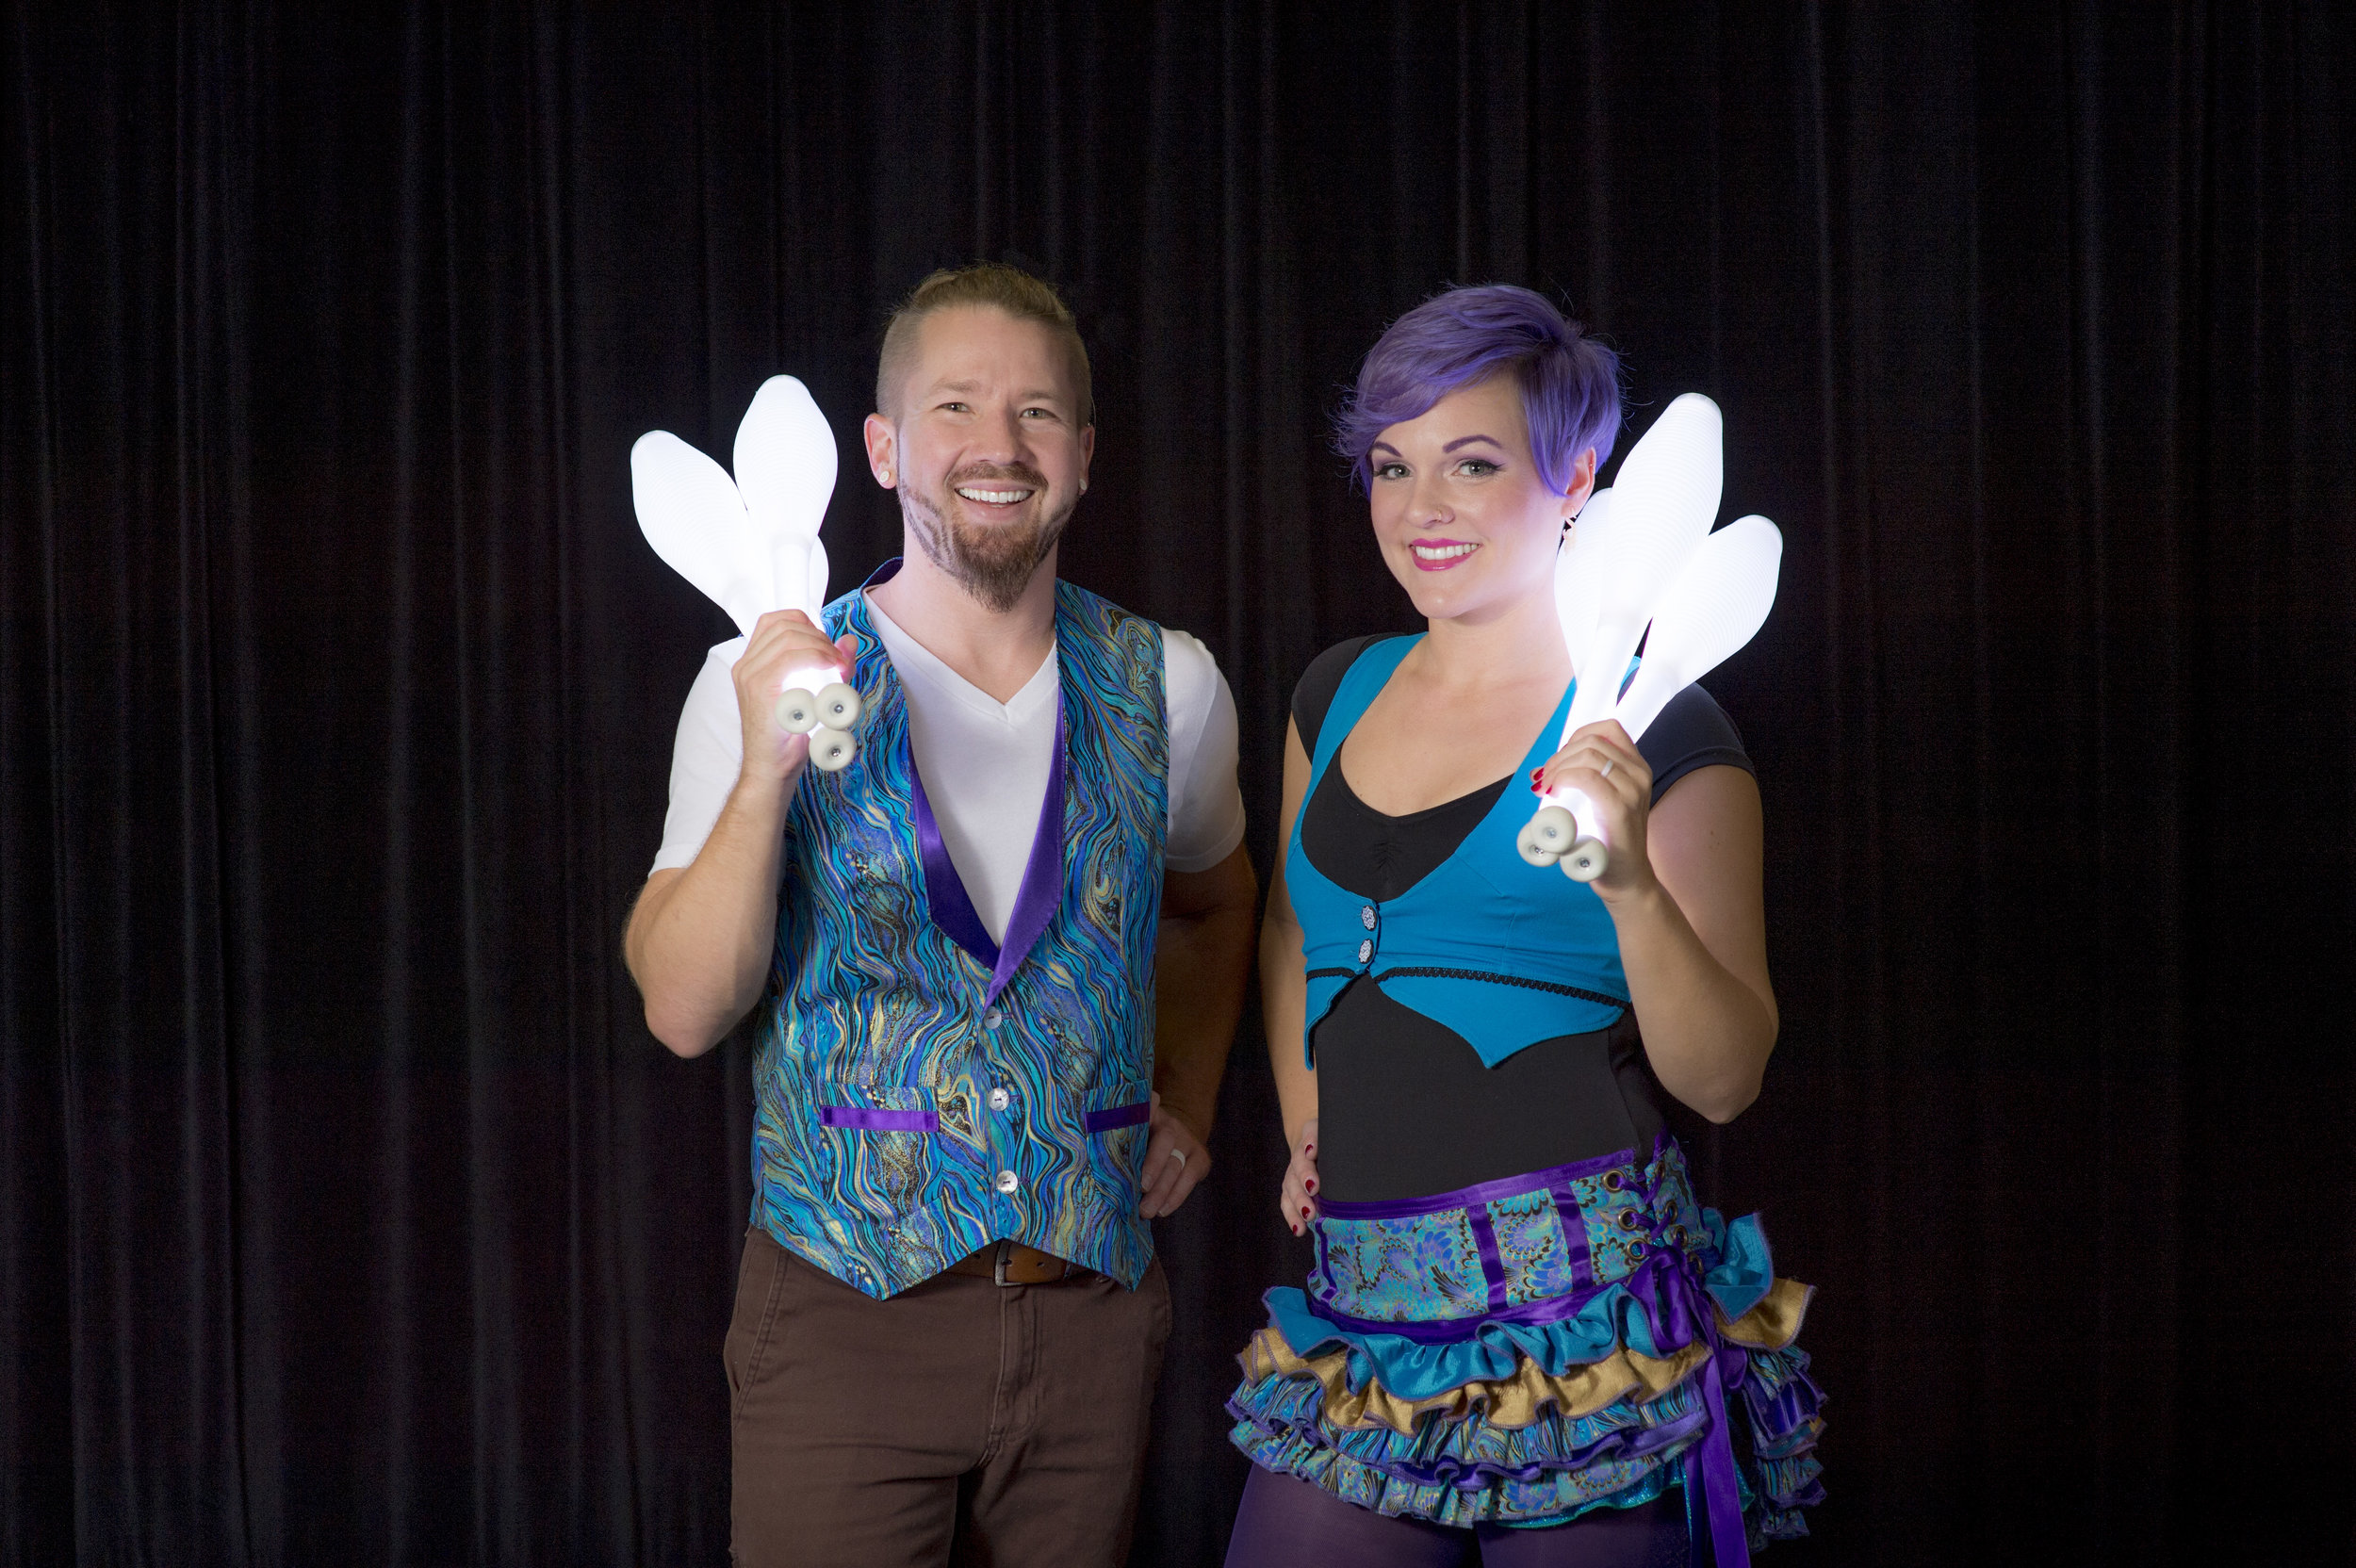 Jeremy & Kelsey Philo perform exciting shows with an empowering message.